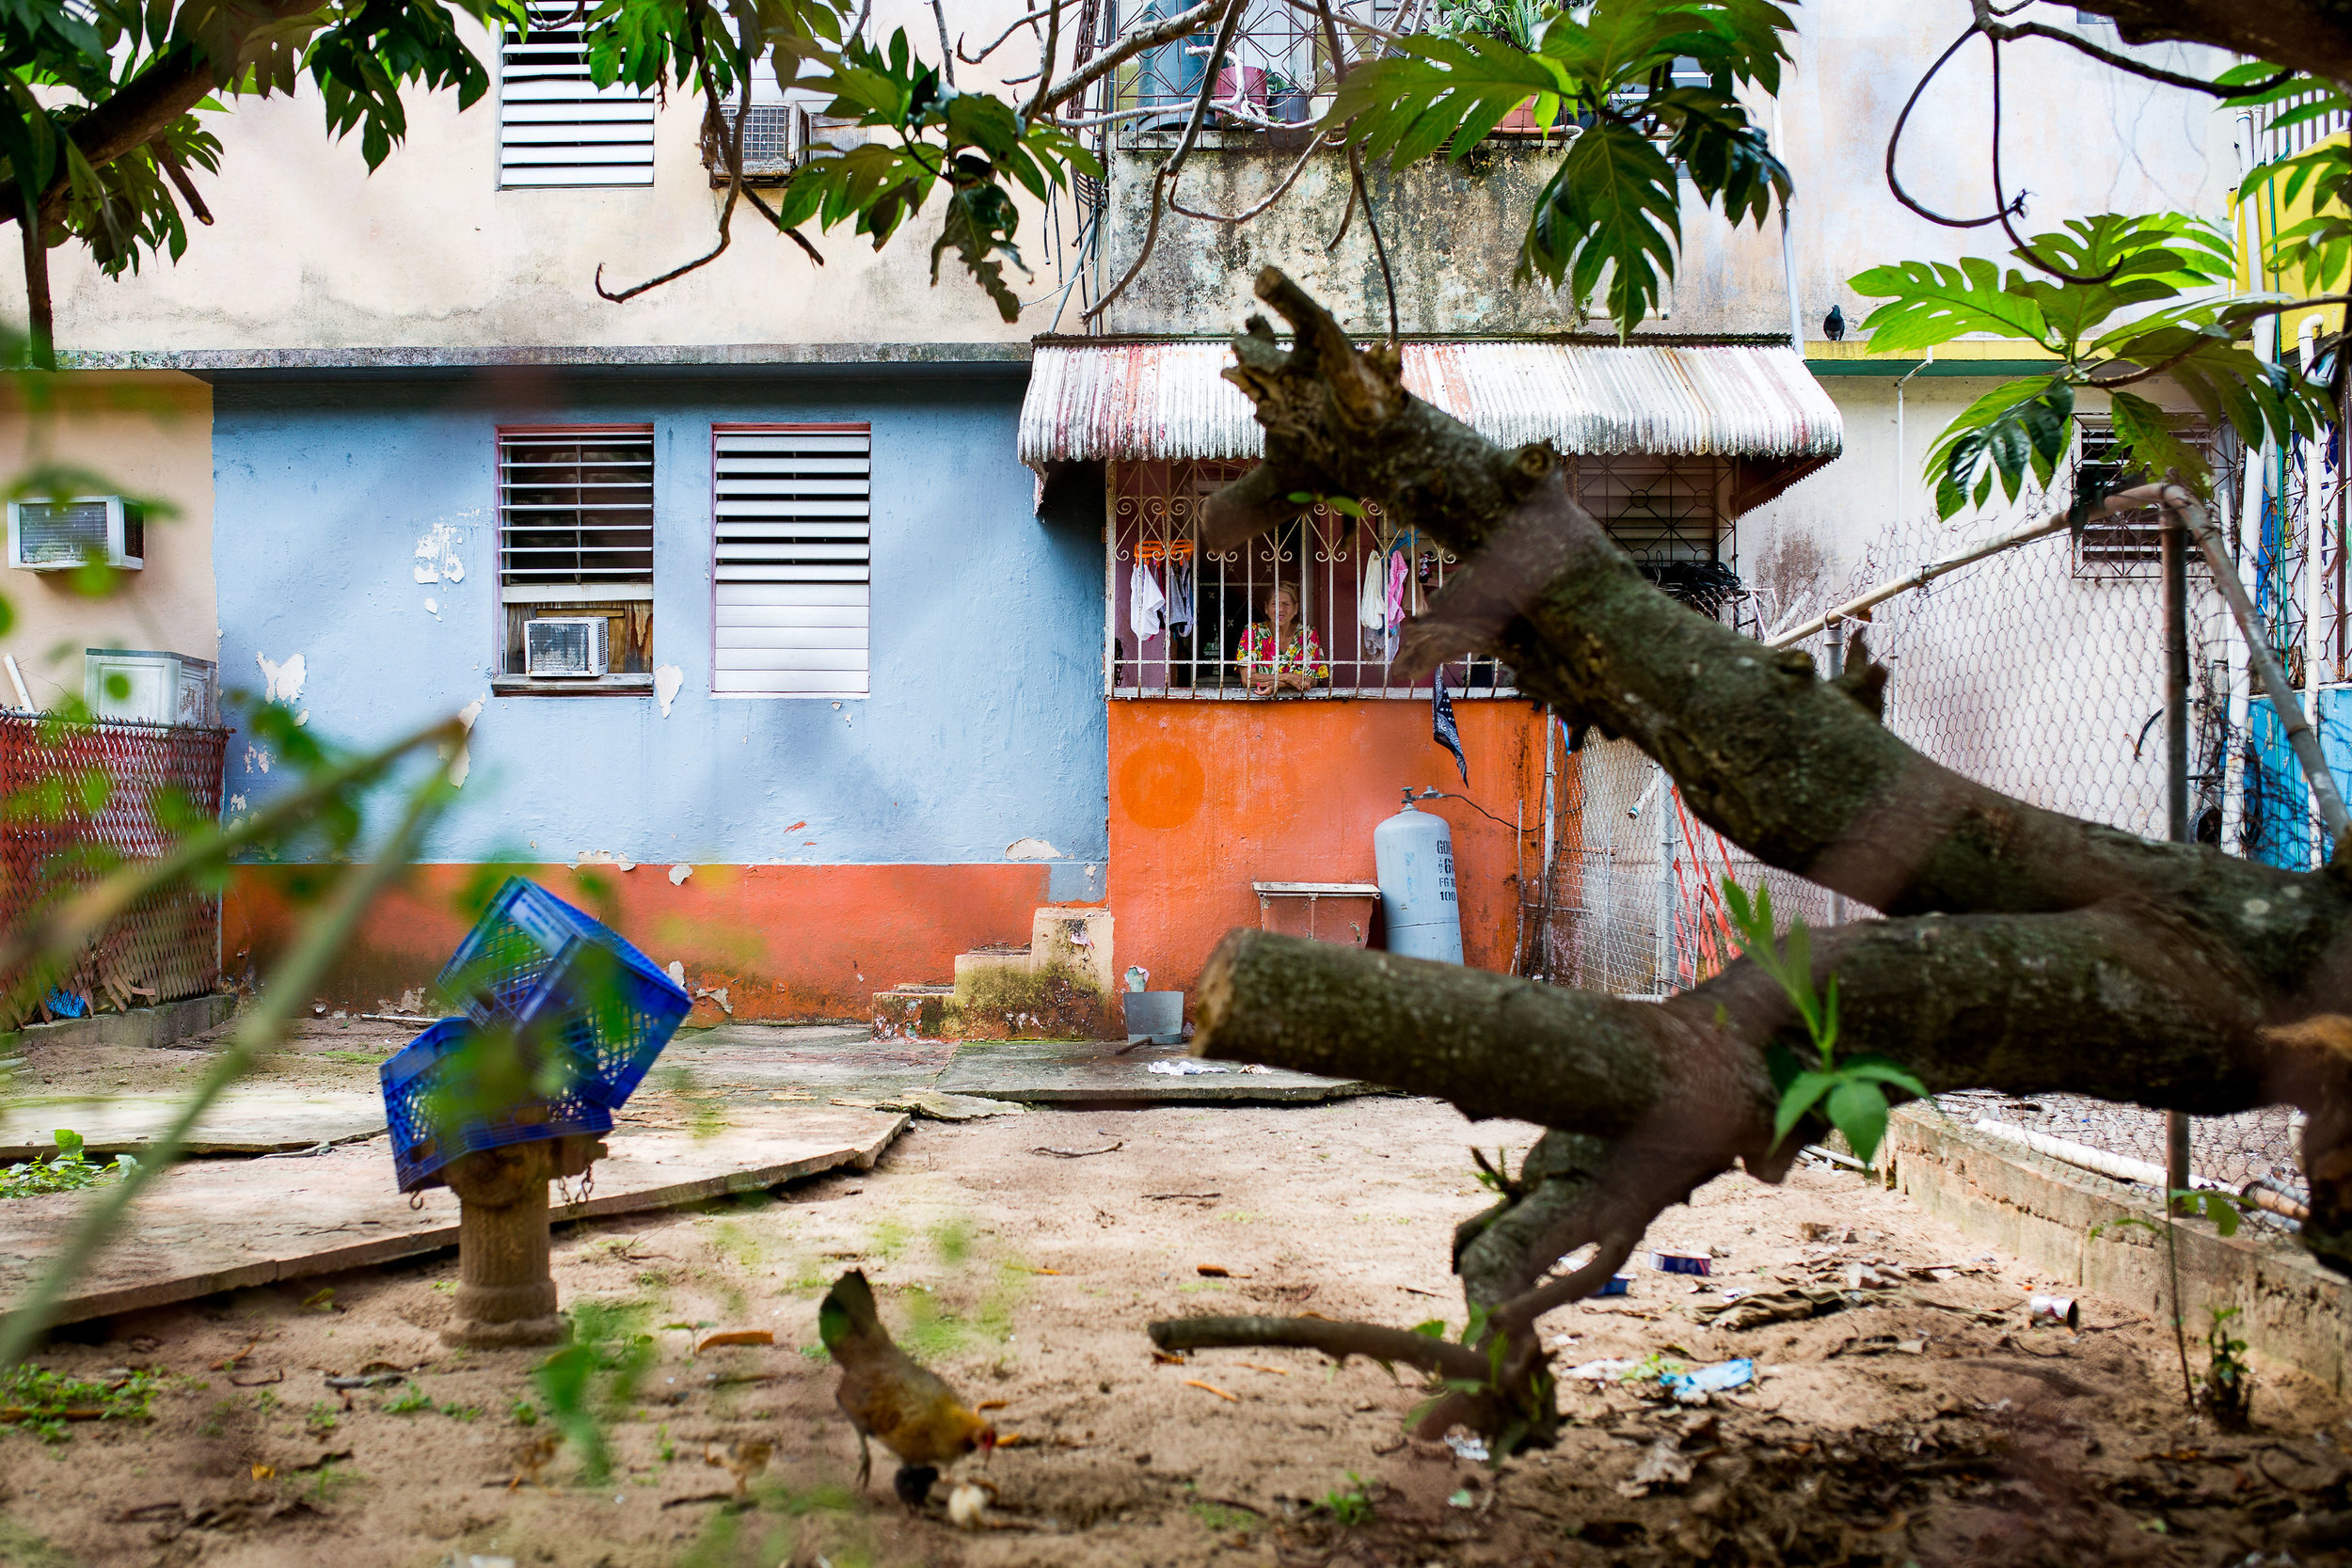 A backyard in Cantera, San Juan, with a tree that was knocked down during Hurricane Irma, which hit parts of Puerto Rico just two weeks before Hurricane Maria devastated the whole island. Photo: Katie Jett Walls